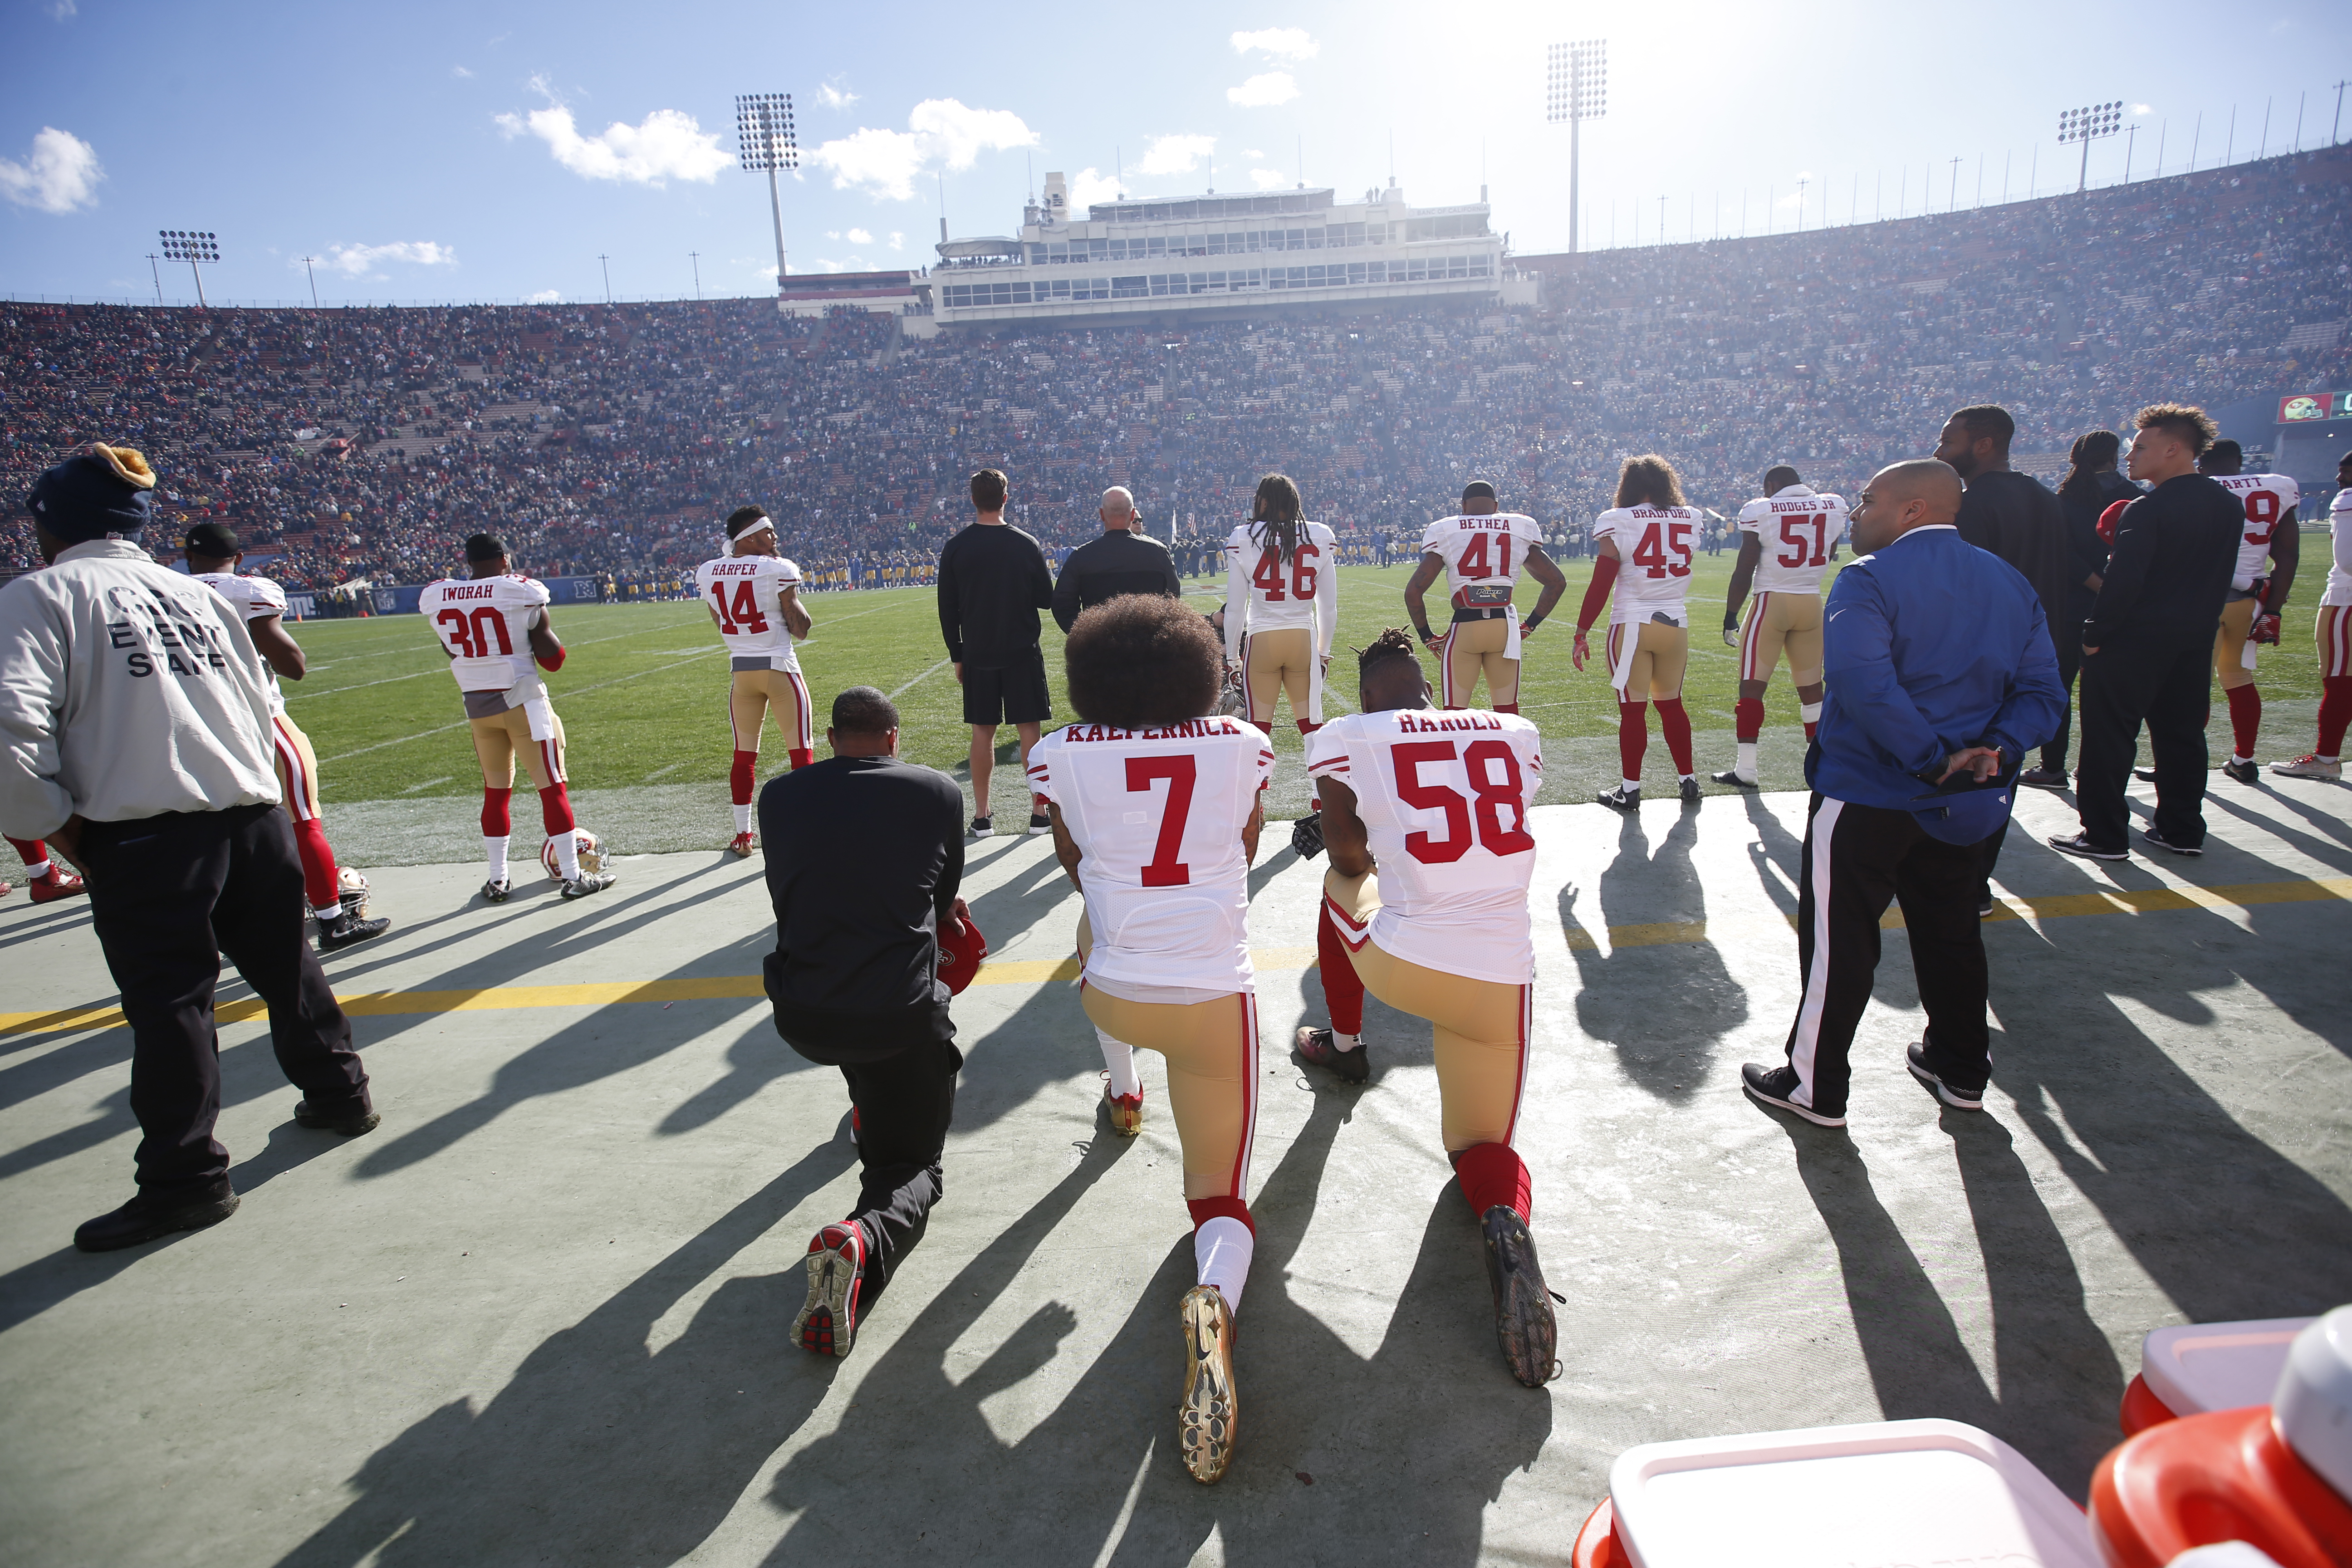 Eric Reid #35, Colin Kaepernick #7 and Eli Harold #58 of the San Francisco 49ers kneel next to each other on the sideline, during the anthem, prior to the game against the Los Angeles Rams at the Los Angeles Coliseum.